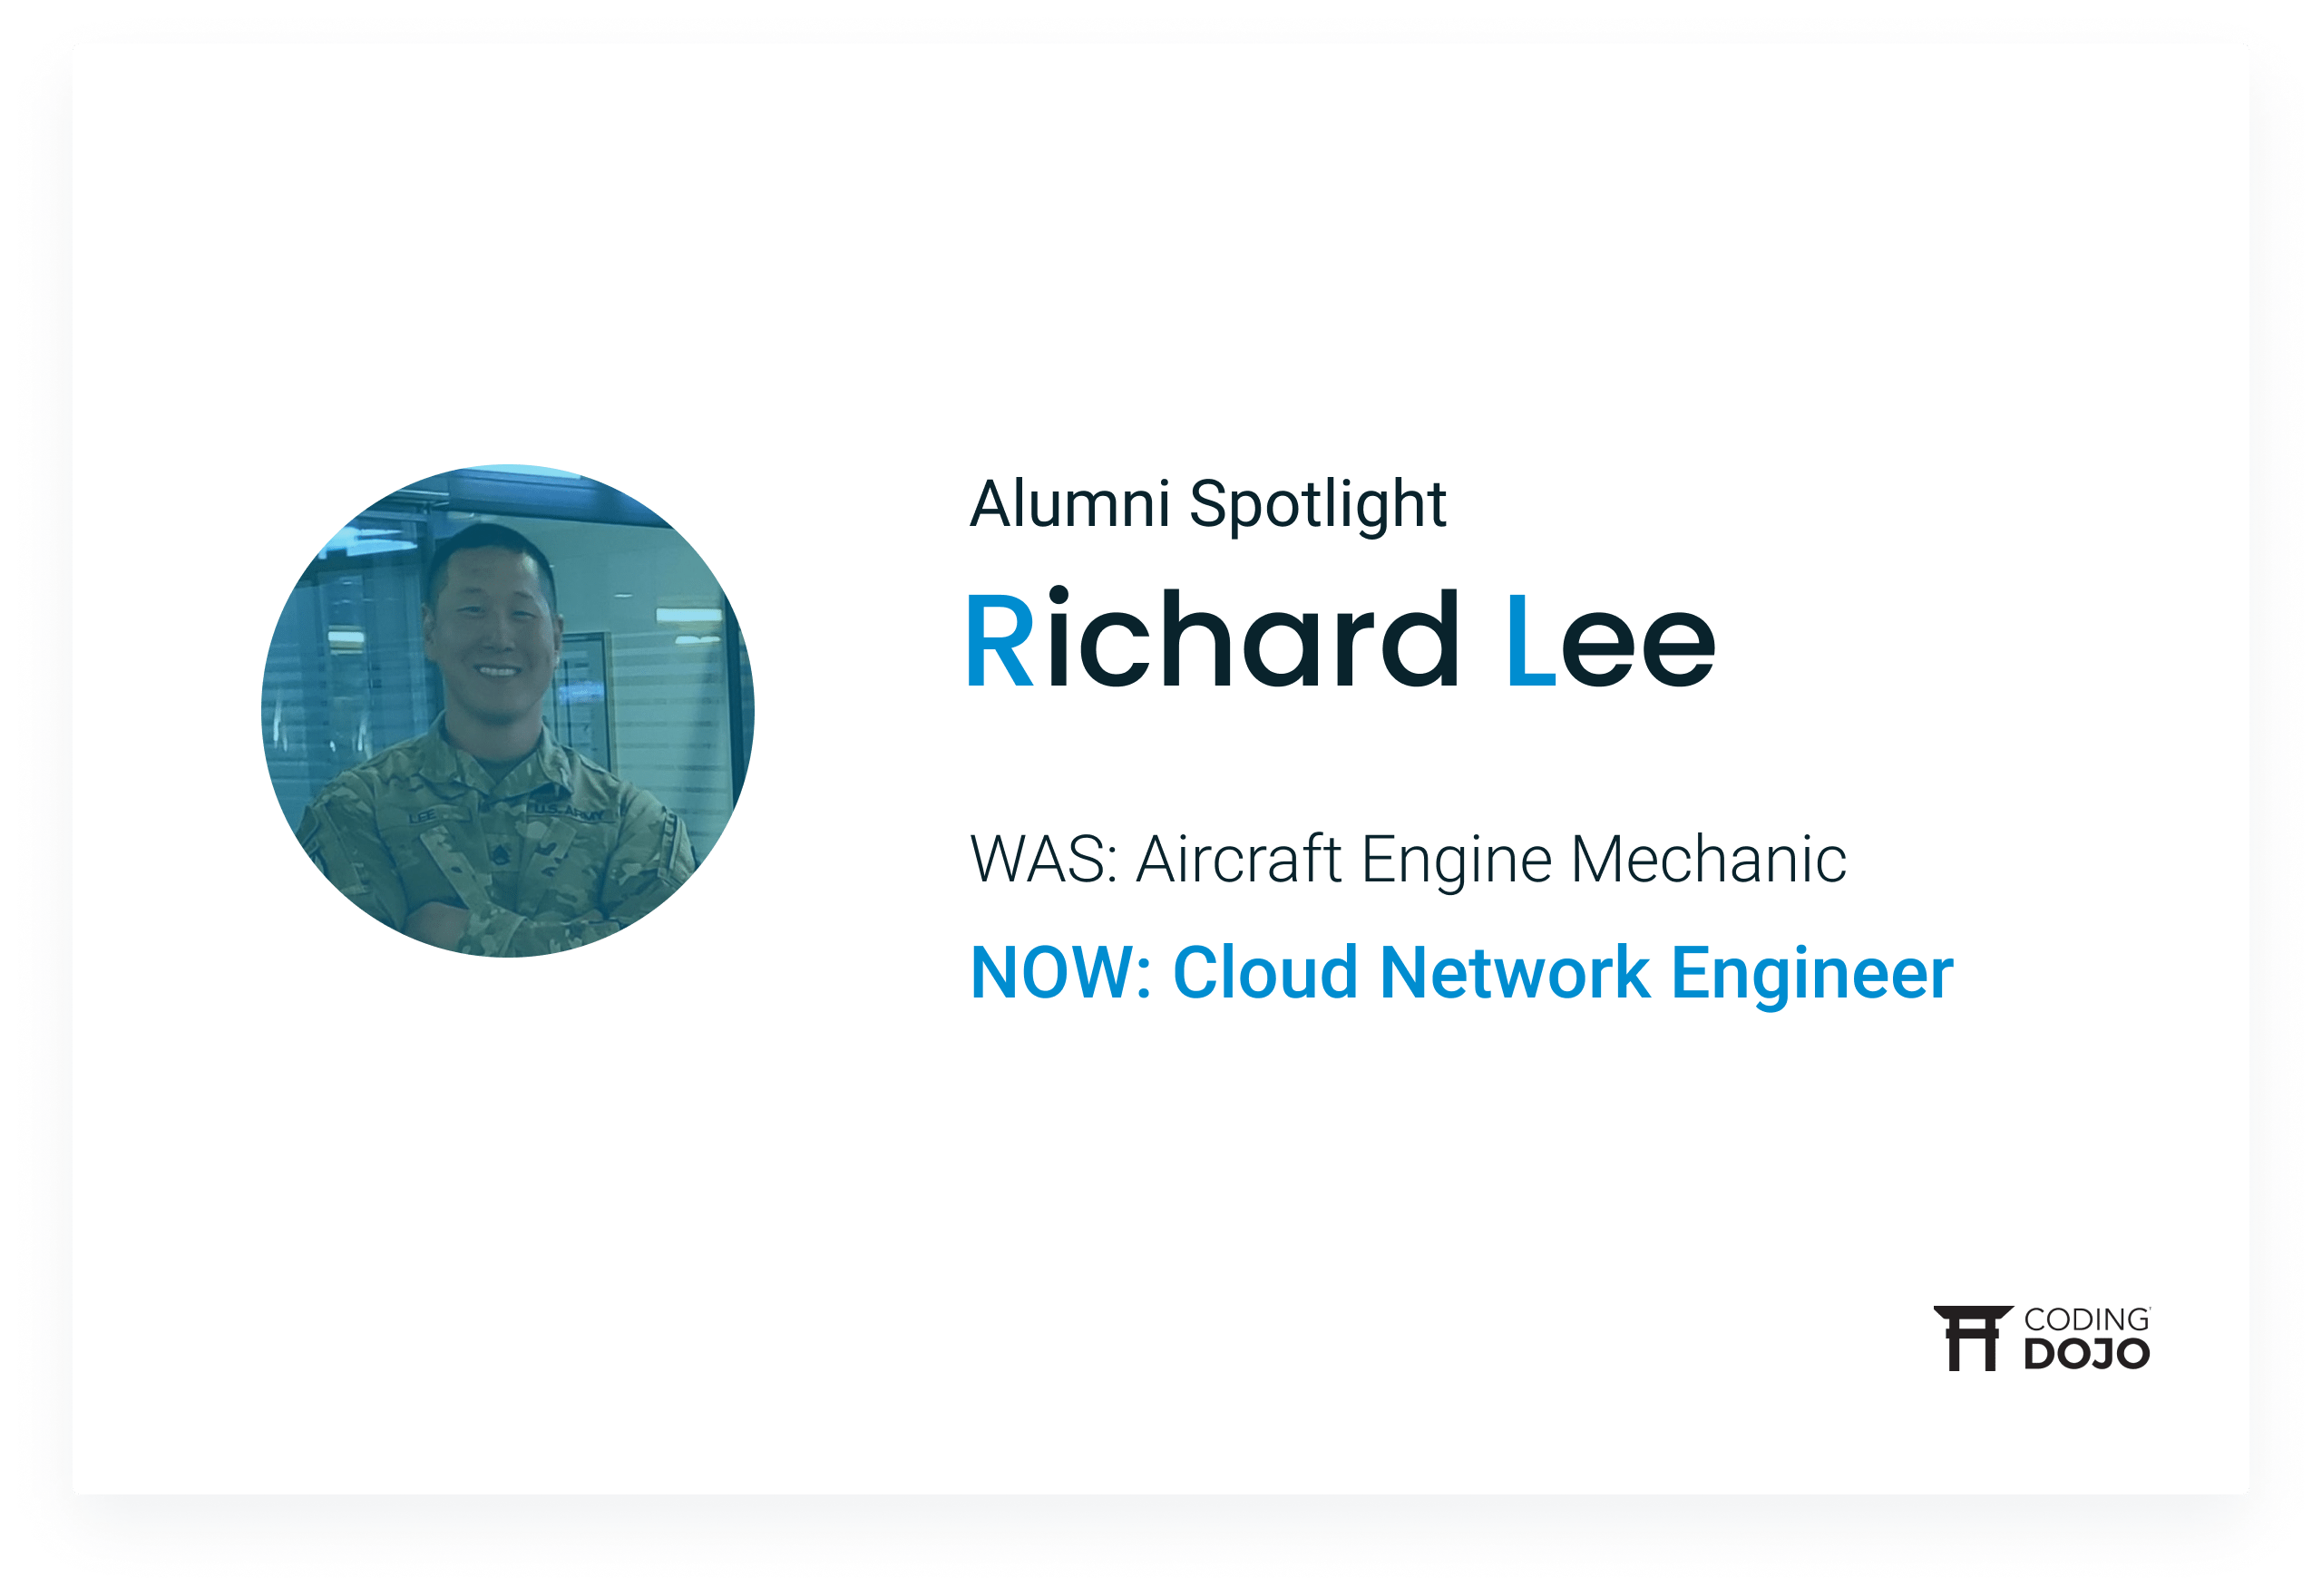 From Airplane Engines to Engineering Networks | How Bellevue Graduate Richard Lee Upgraded His Career in the Cloud